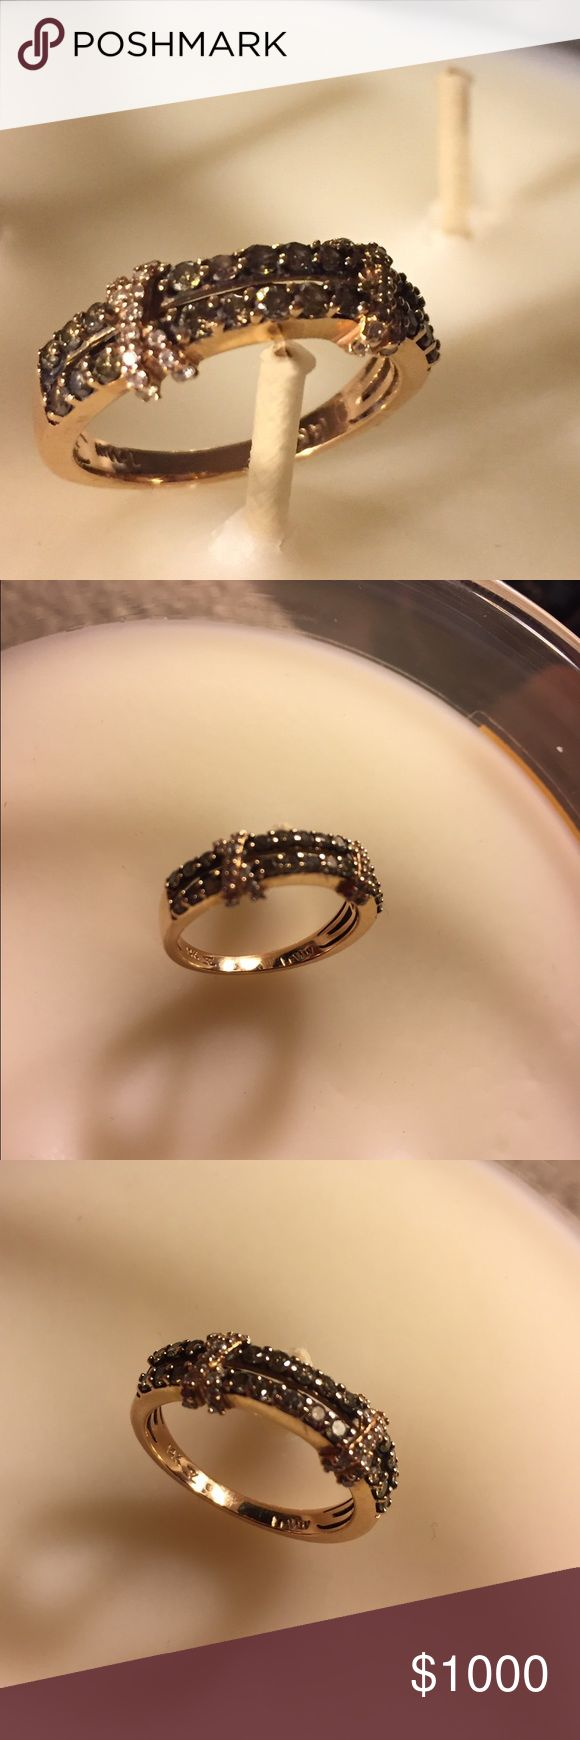 14 k levian chocolate diamond ring Levian chocolate diamonds ring with papers Jewelry Rings